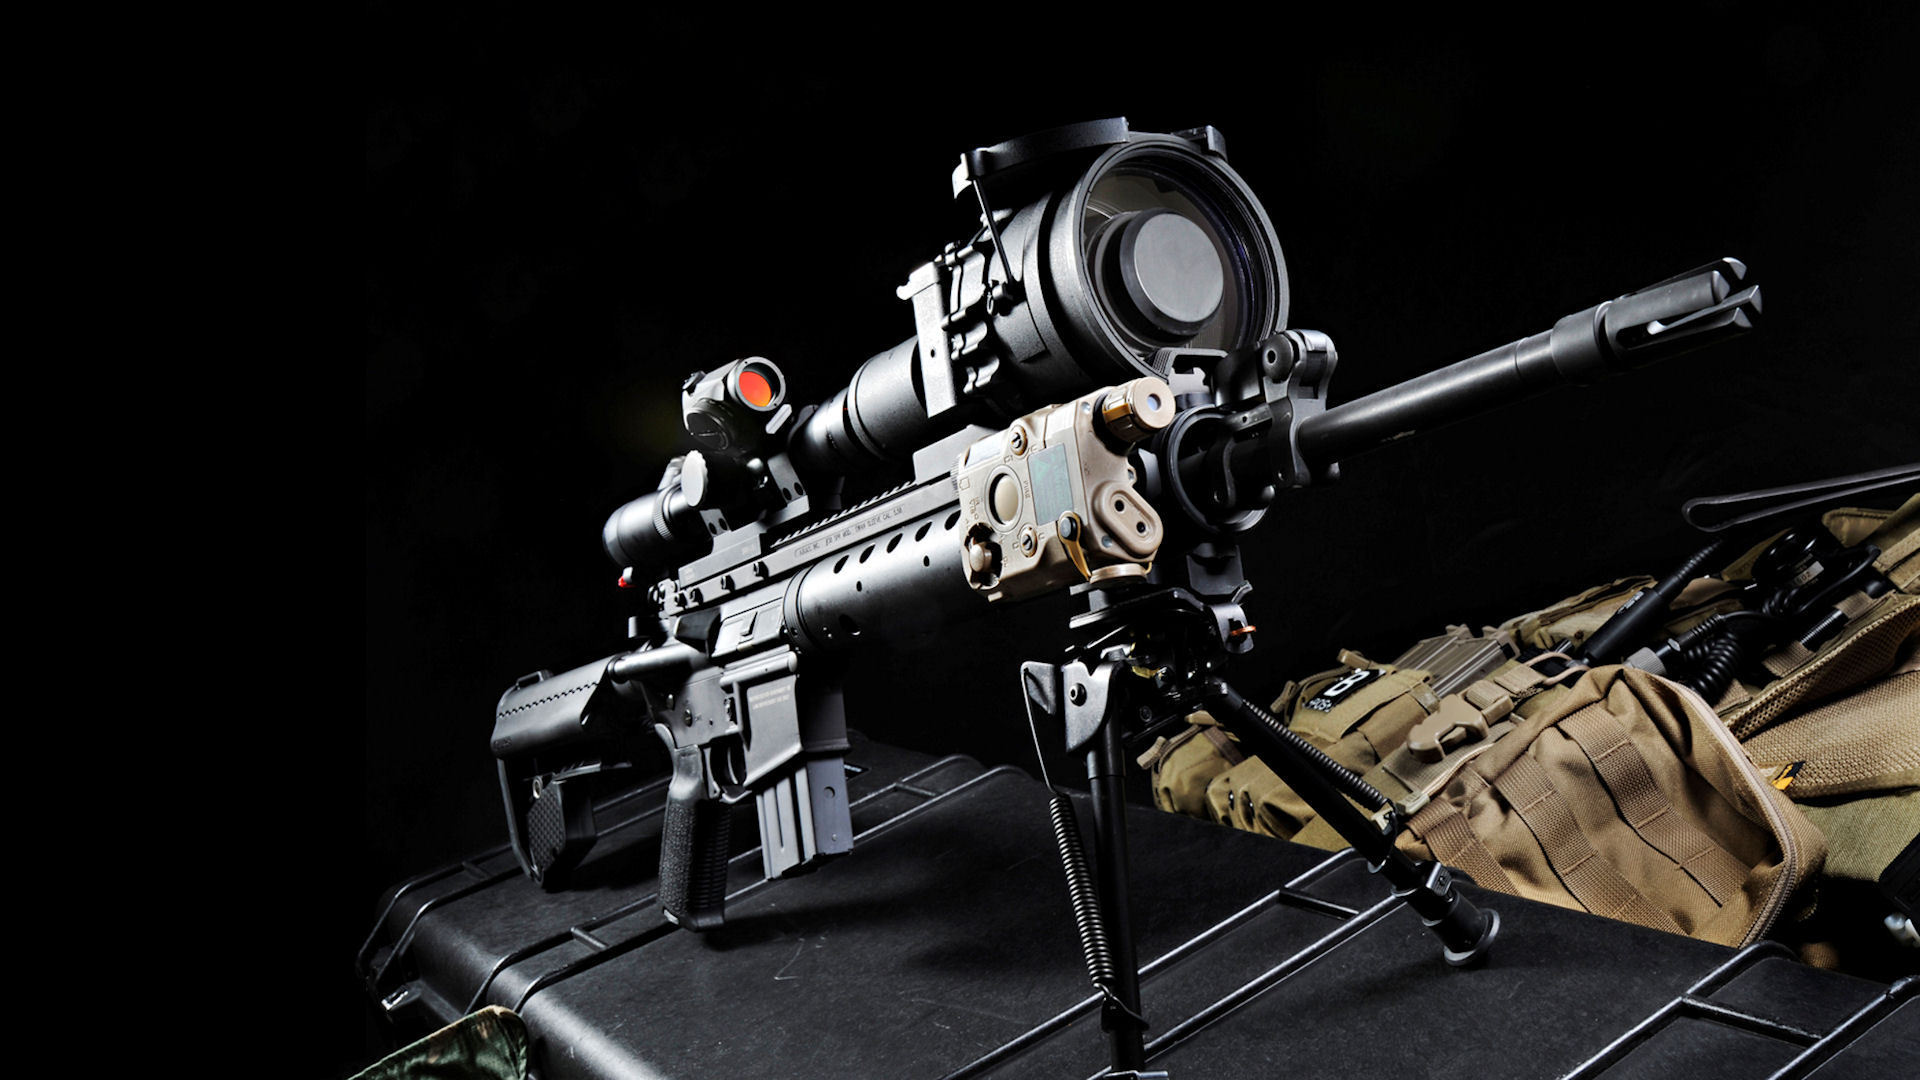 Military weapons guns sniper wallpaper 1920x1080 28702 1920x1080